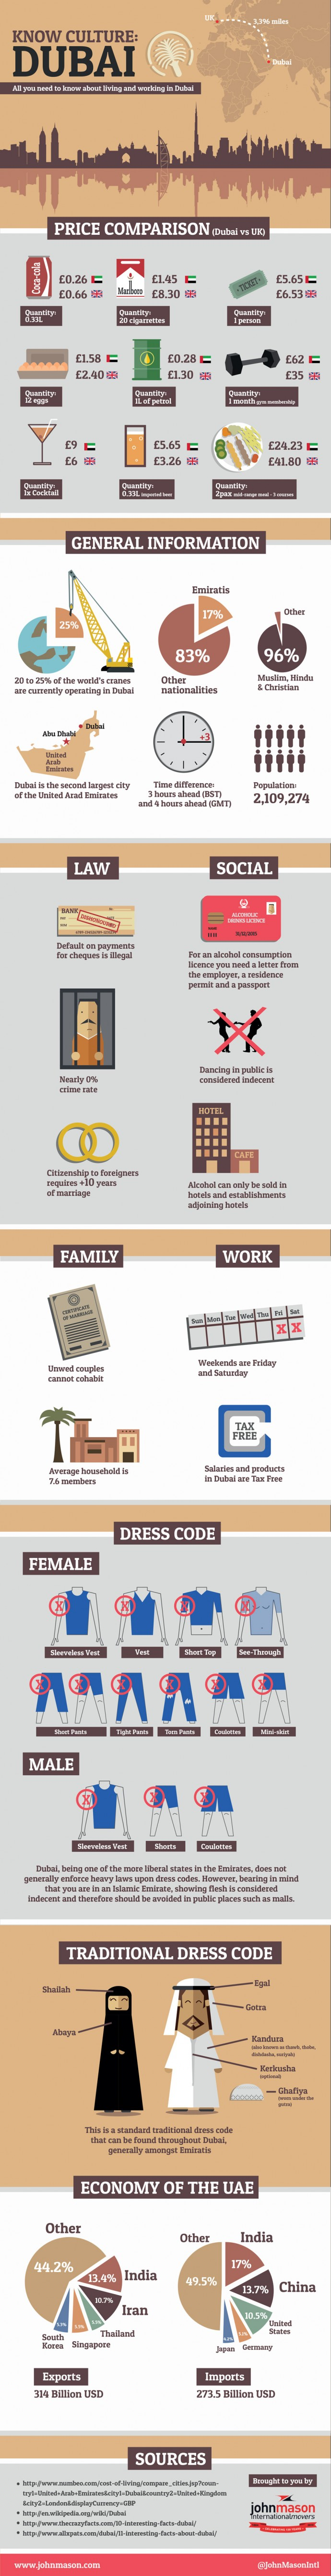 Living in Dubai Infographic